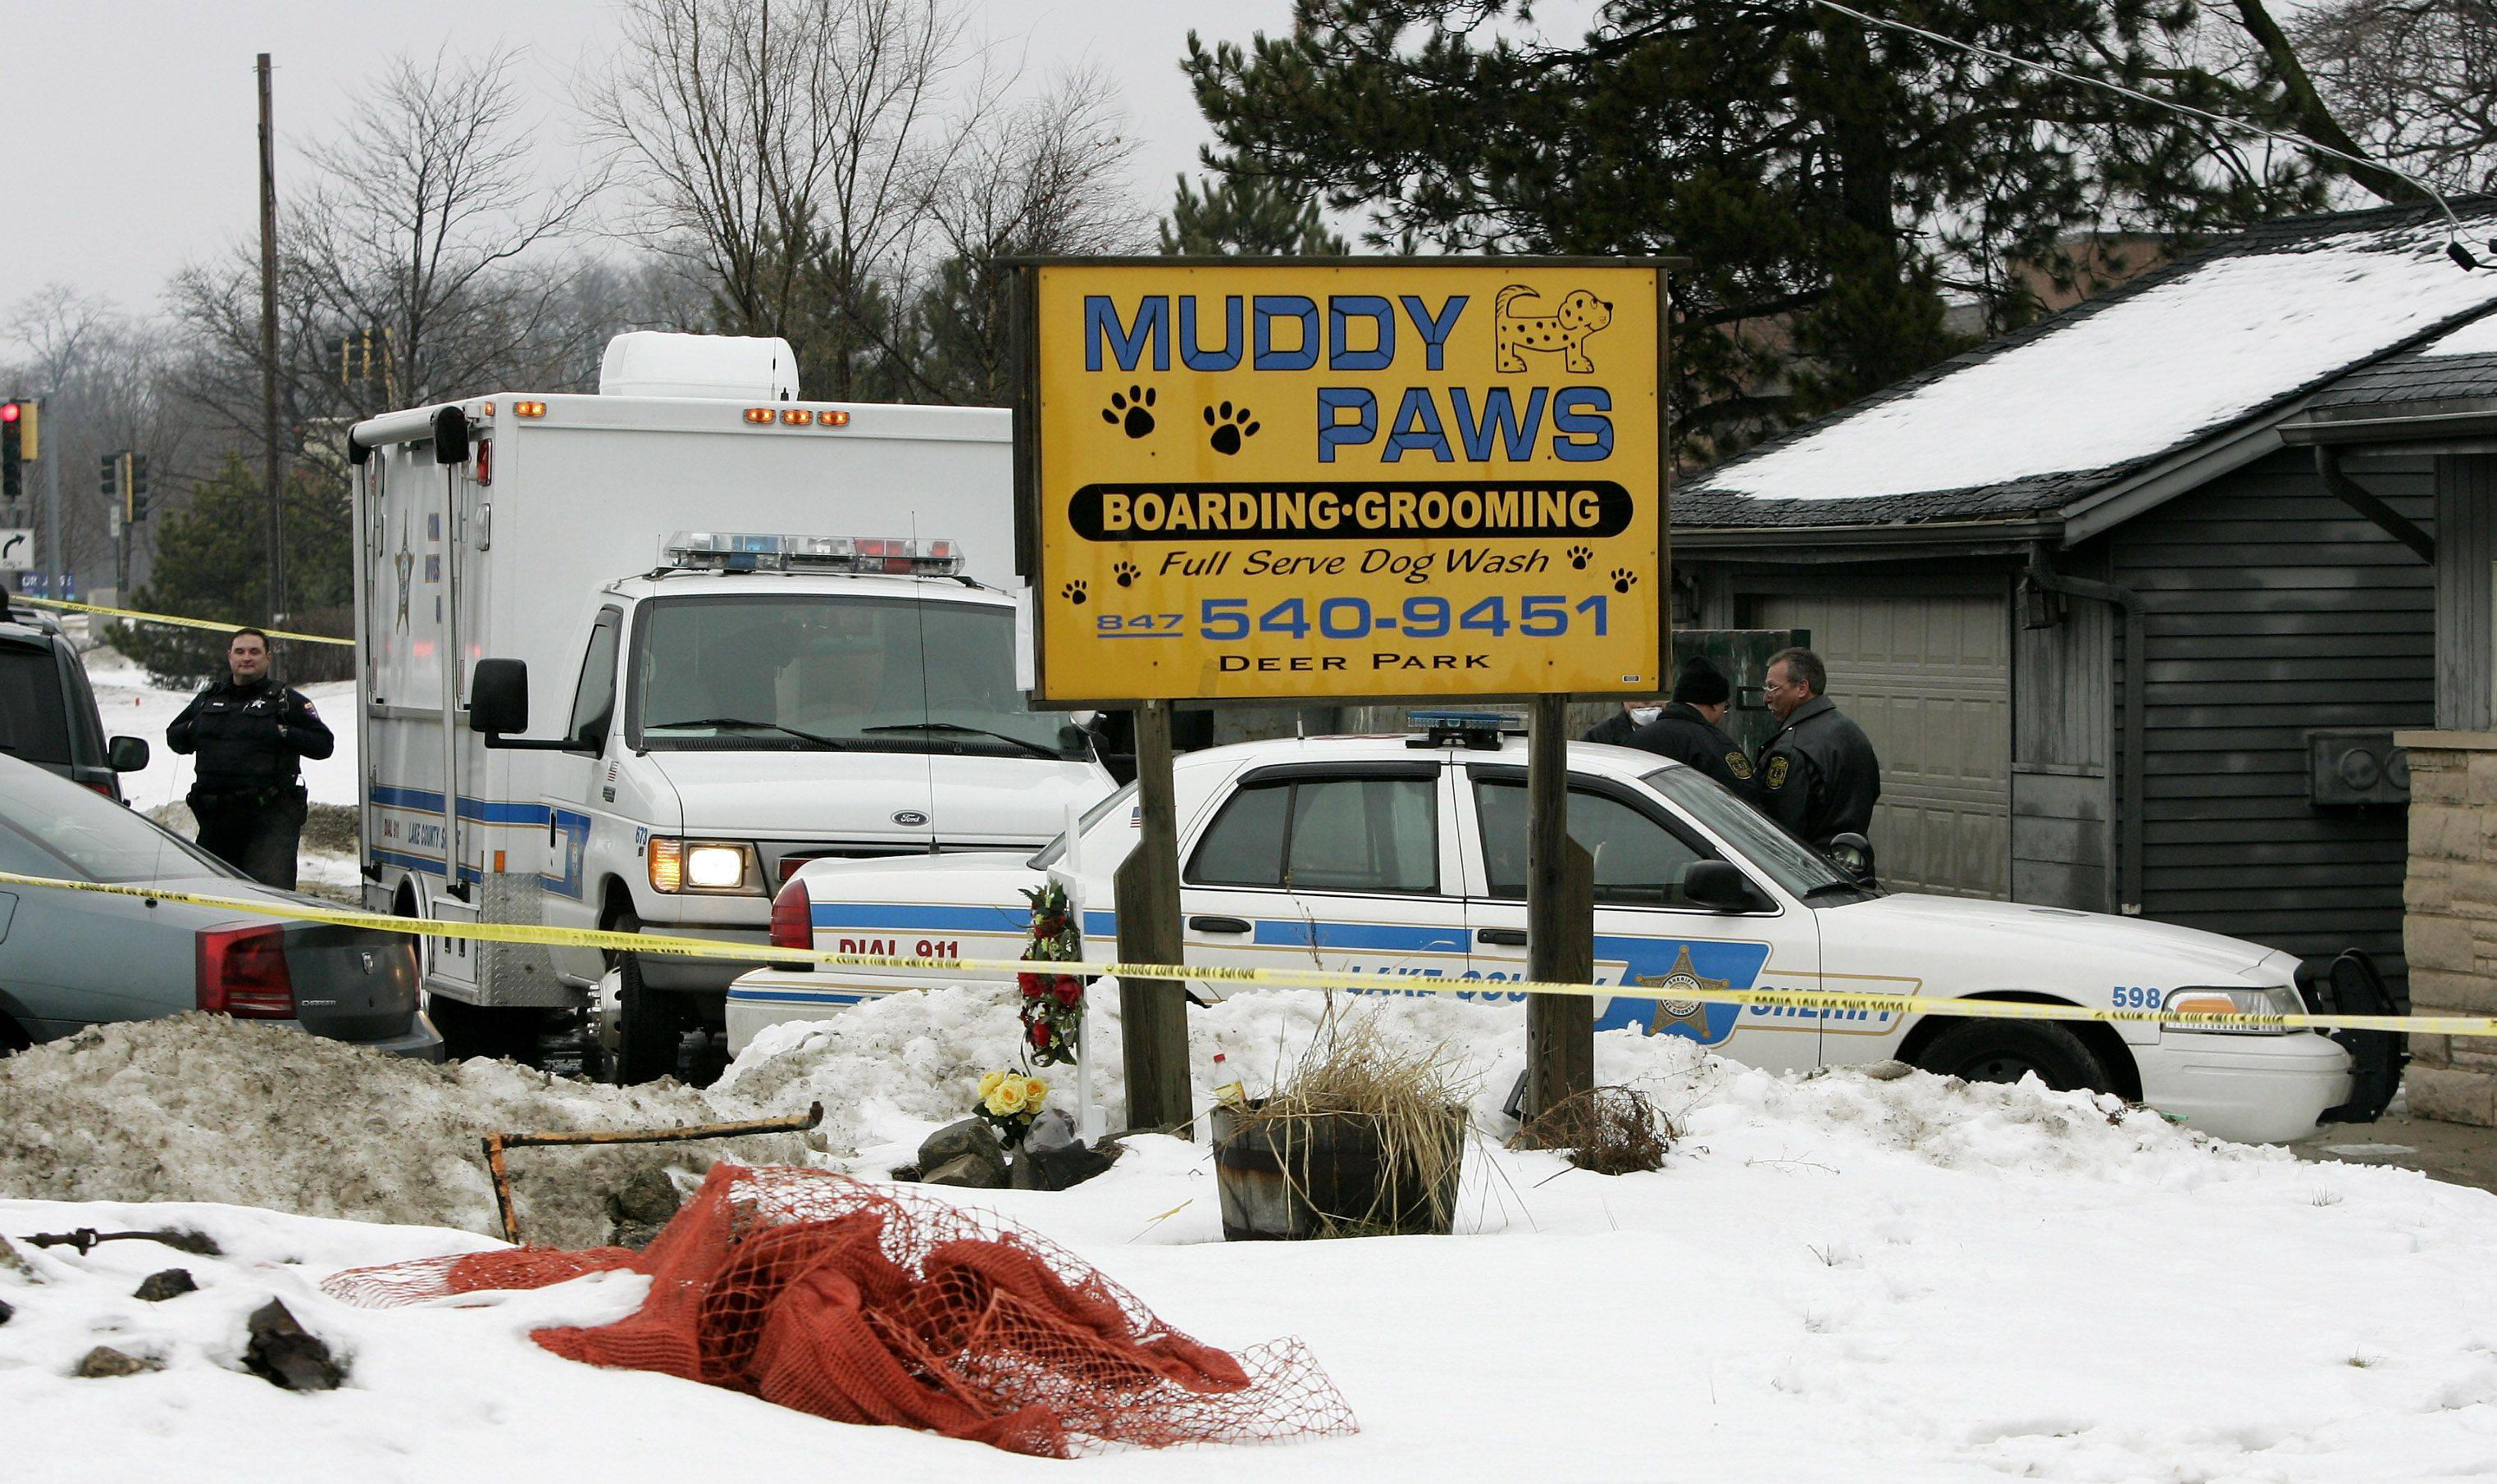 Lake County sheriff's investigators Kildeer police and other agencies work the scene at Muddy Paws Dog Rescue.